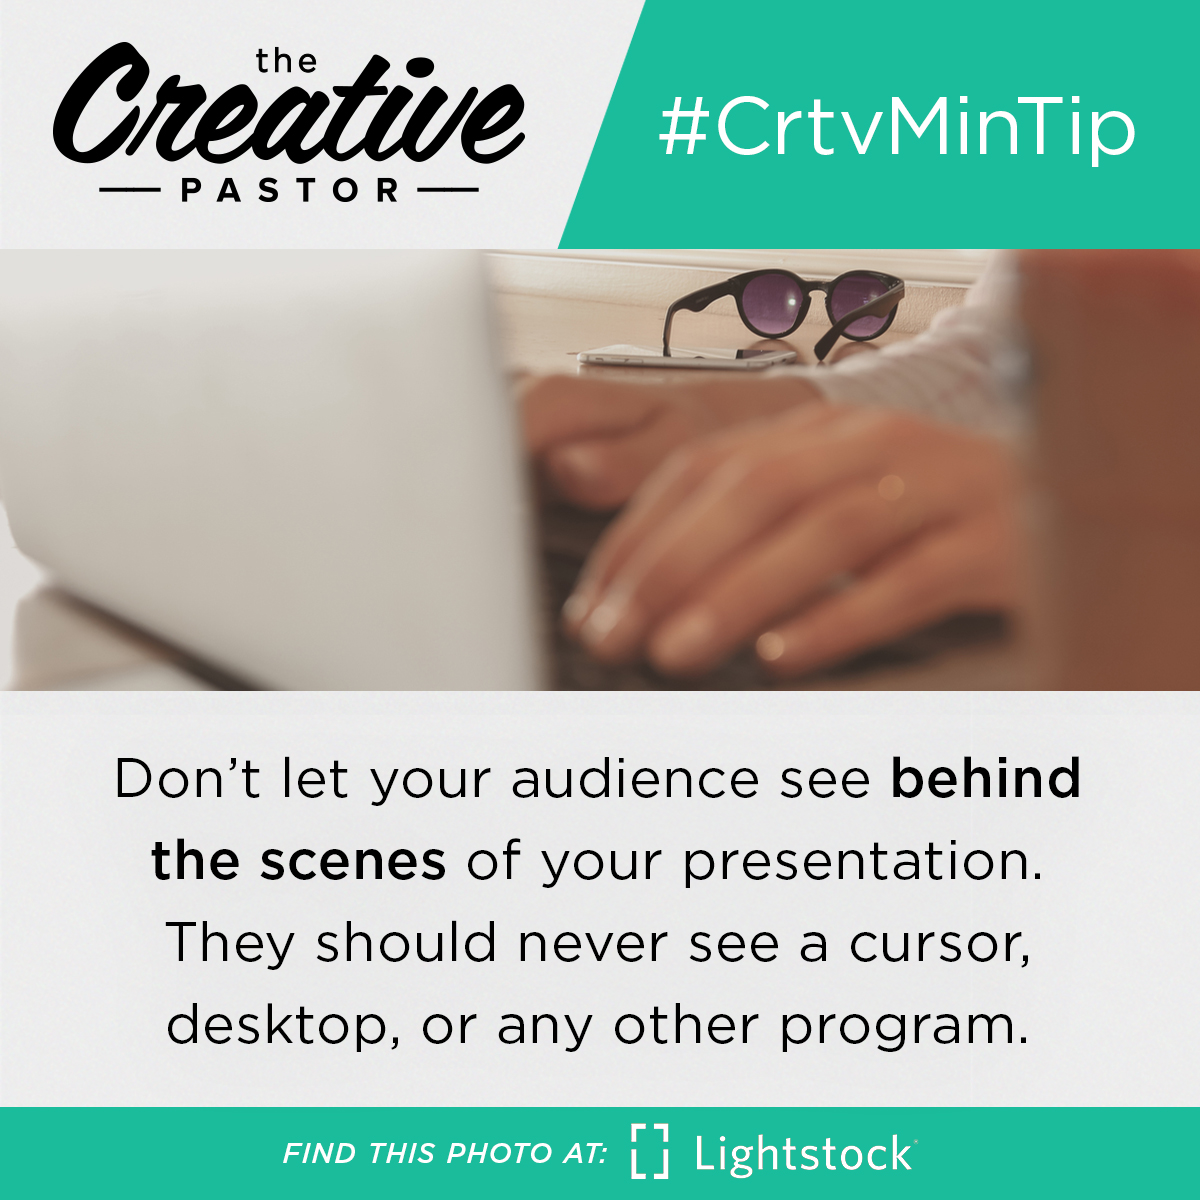 #CrtvMinTip: Don't let your audience see behind the scenes of your presentation. They should never see a cursor, desktop, or any other program.